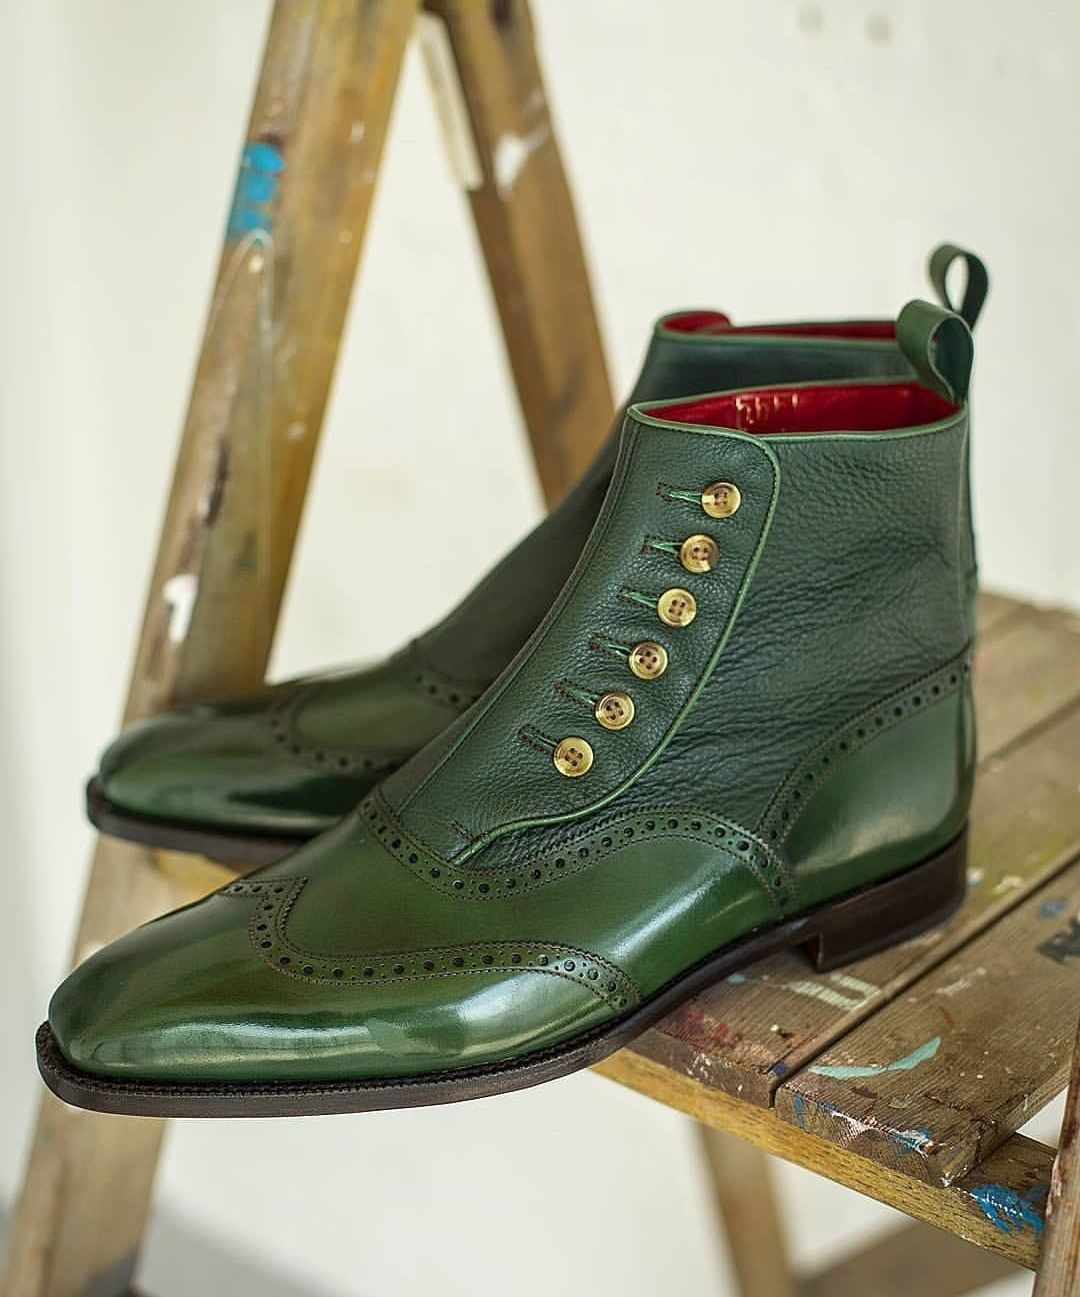 Handmade Men 2 Tone Green Leather Boot Men Ankle High Button